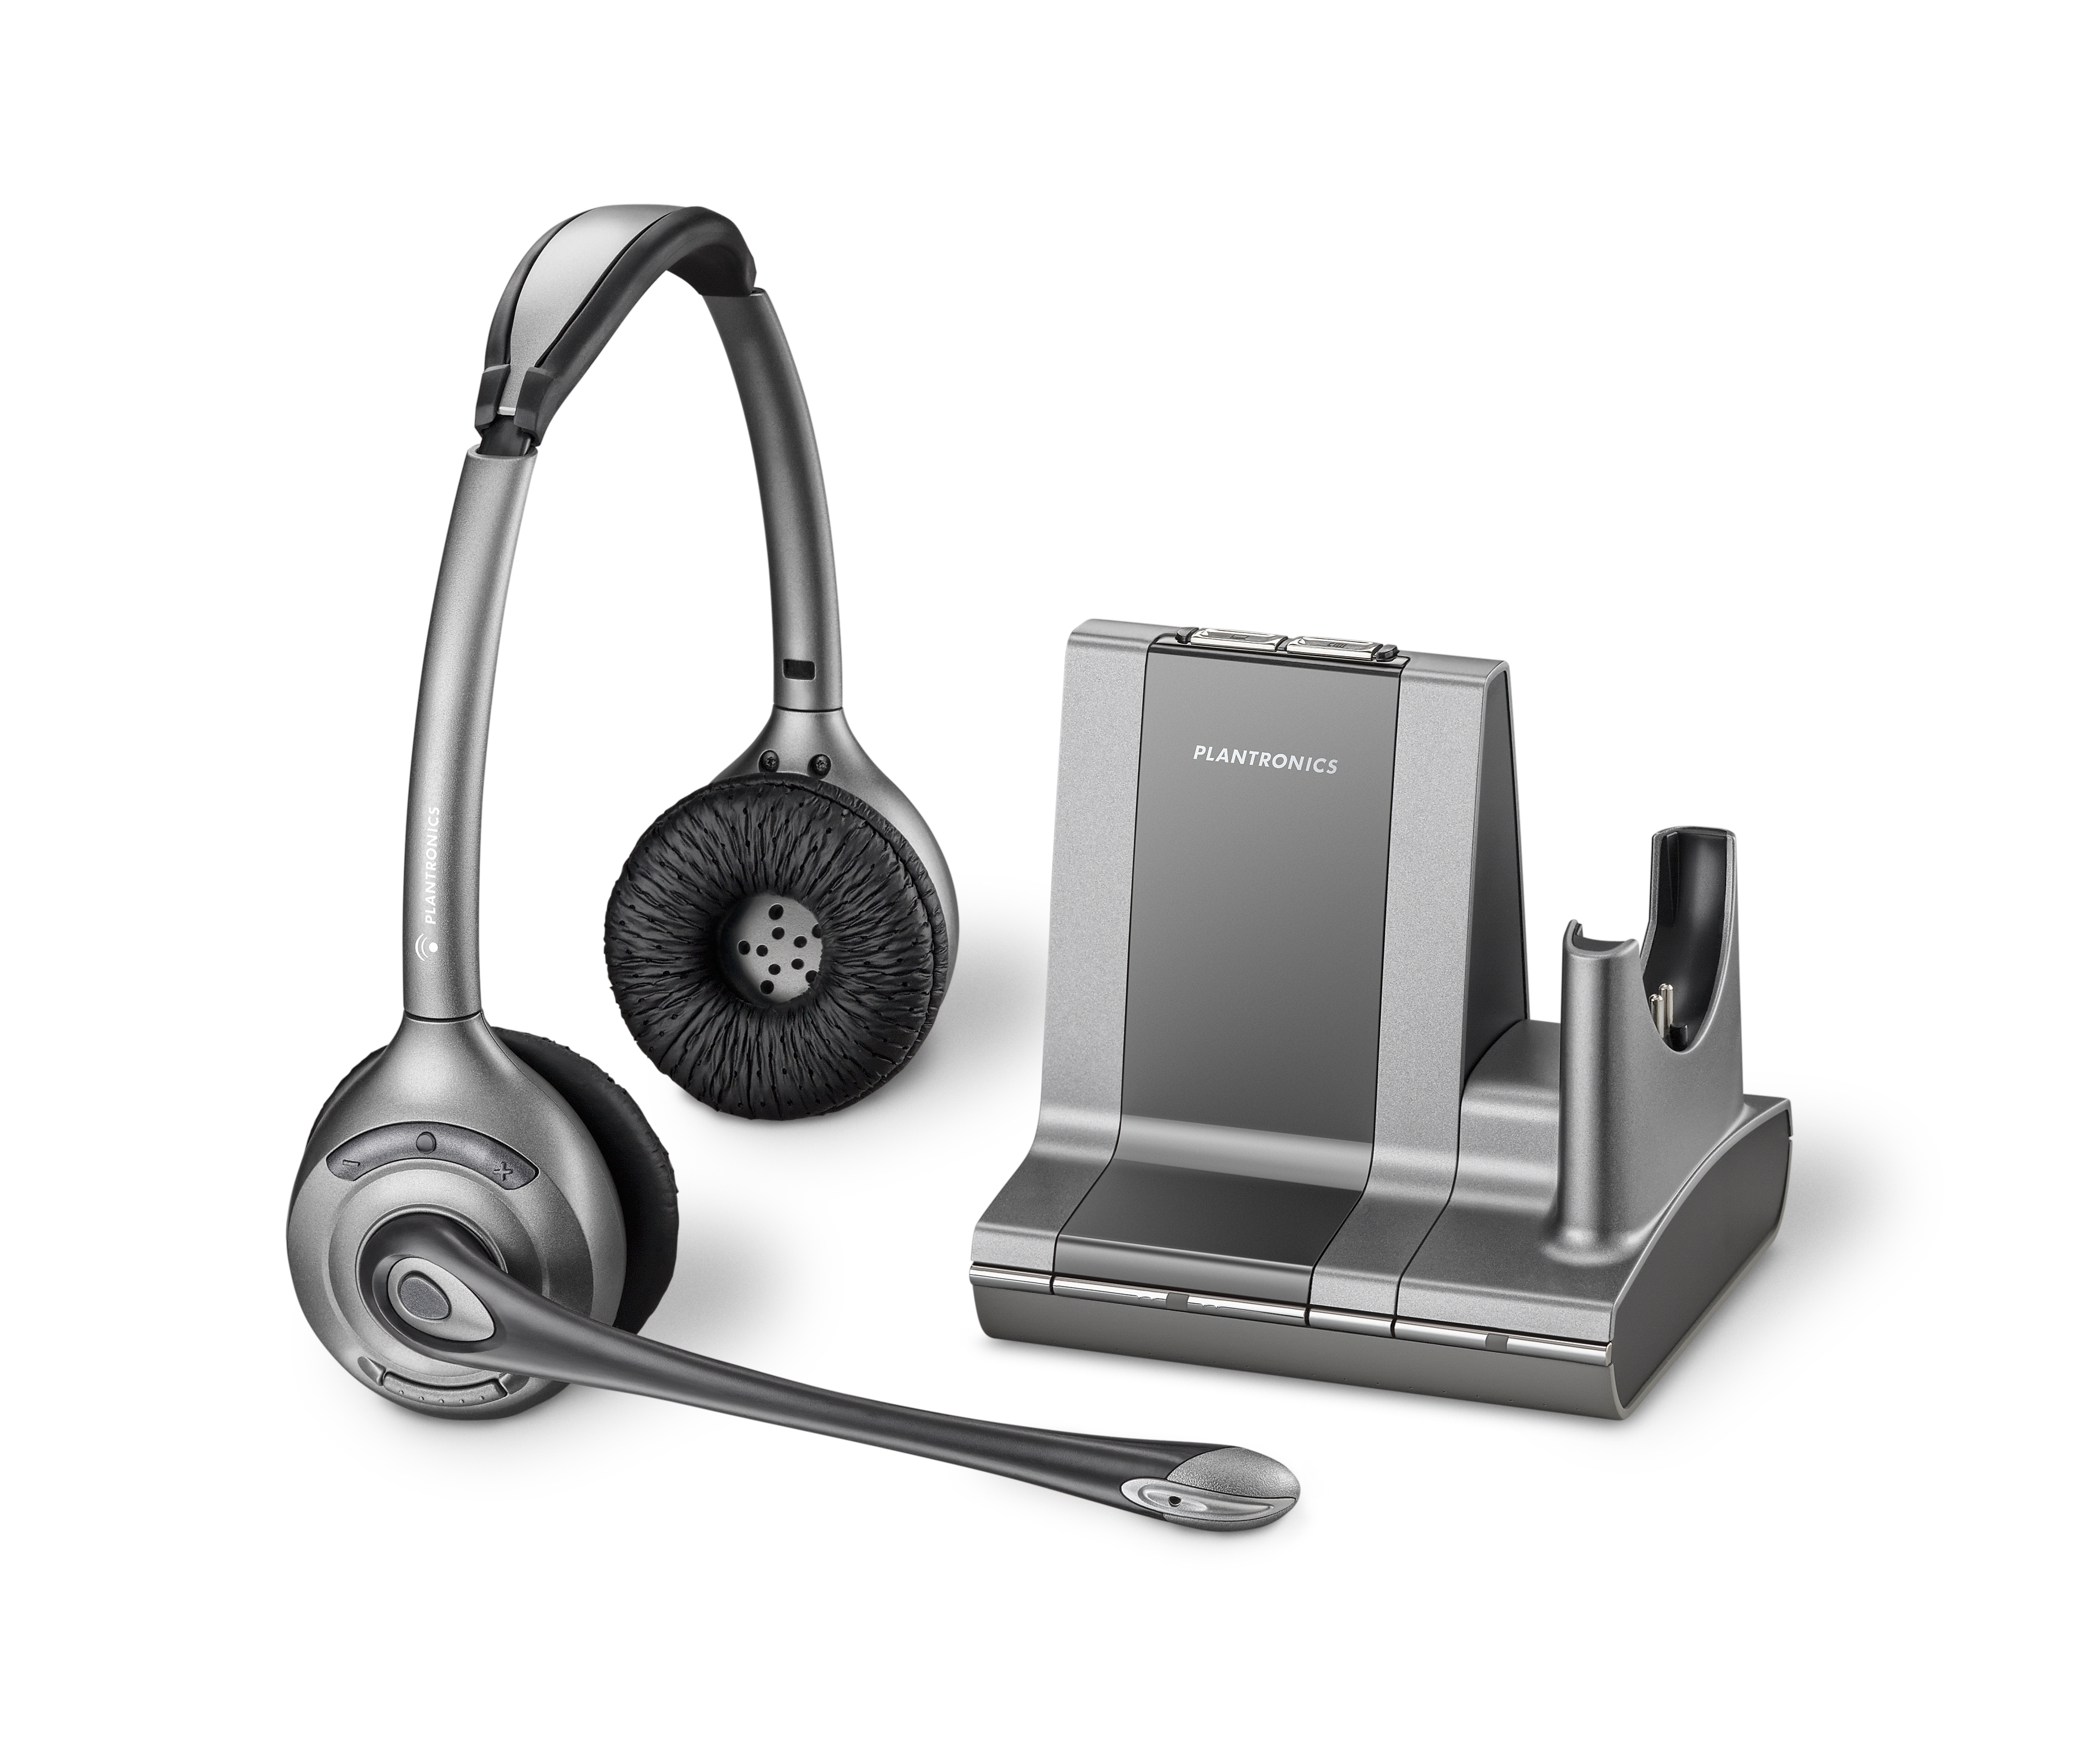 savi office comfortcanada s blog rh comfortcanadablog com savi w720-m manual plantronics savi w720 manual